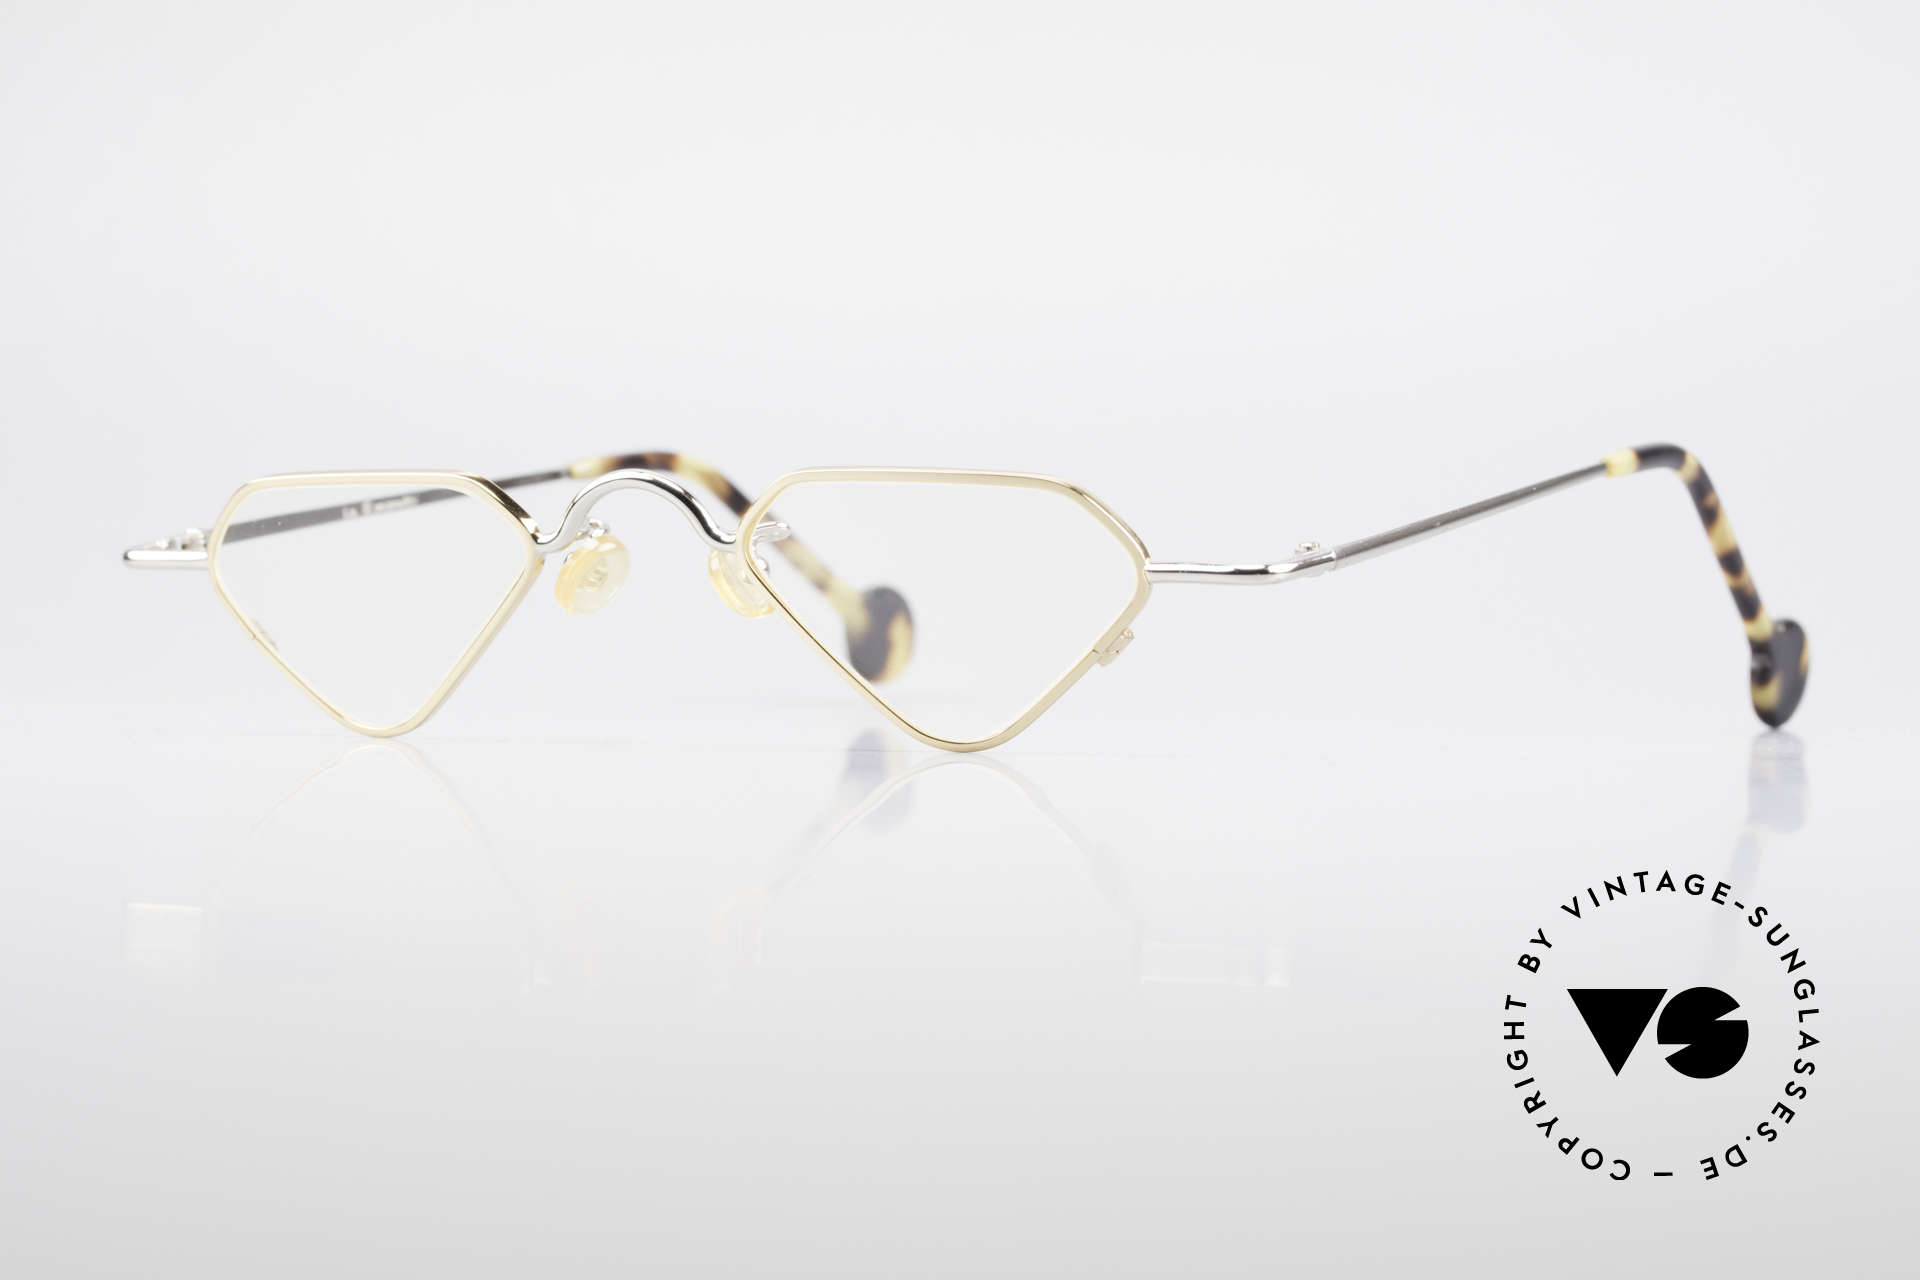 L.A. Eyeworks Millie 451 Reading Glasses Like A Diamond, interesting vintage reading glasses by L.A. EYEWORKS, Made for Men and Women